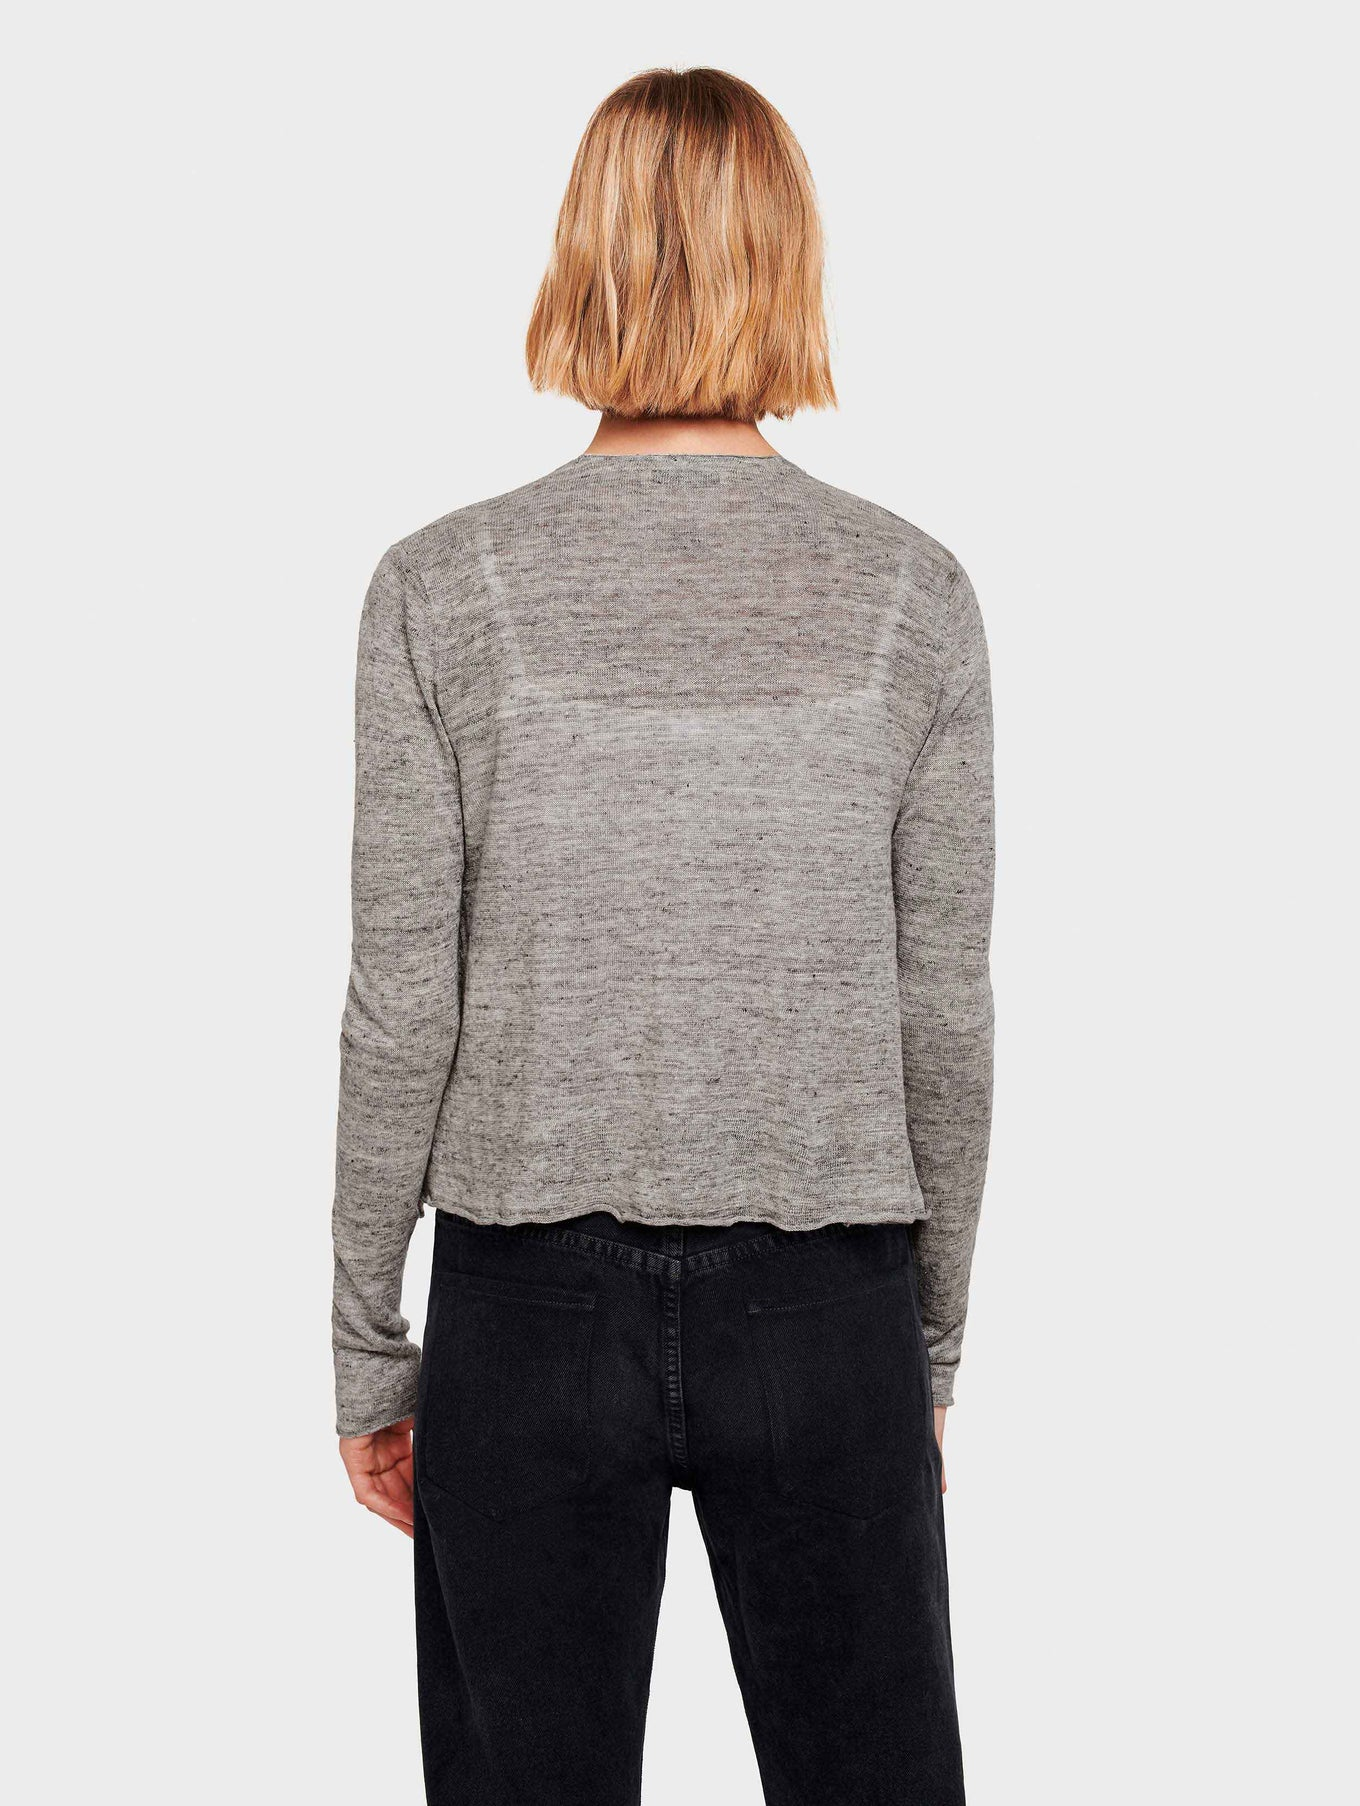 Linen Cropped Swing Cardigan - Shadow Heather - Image 3